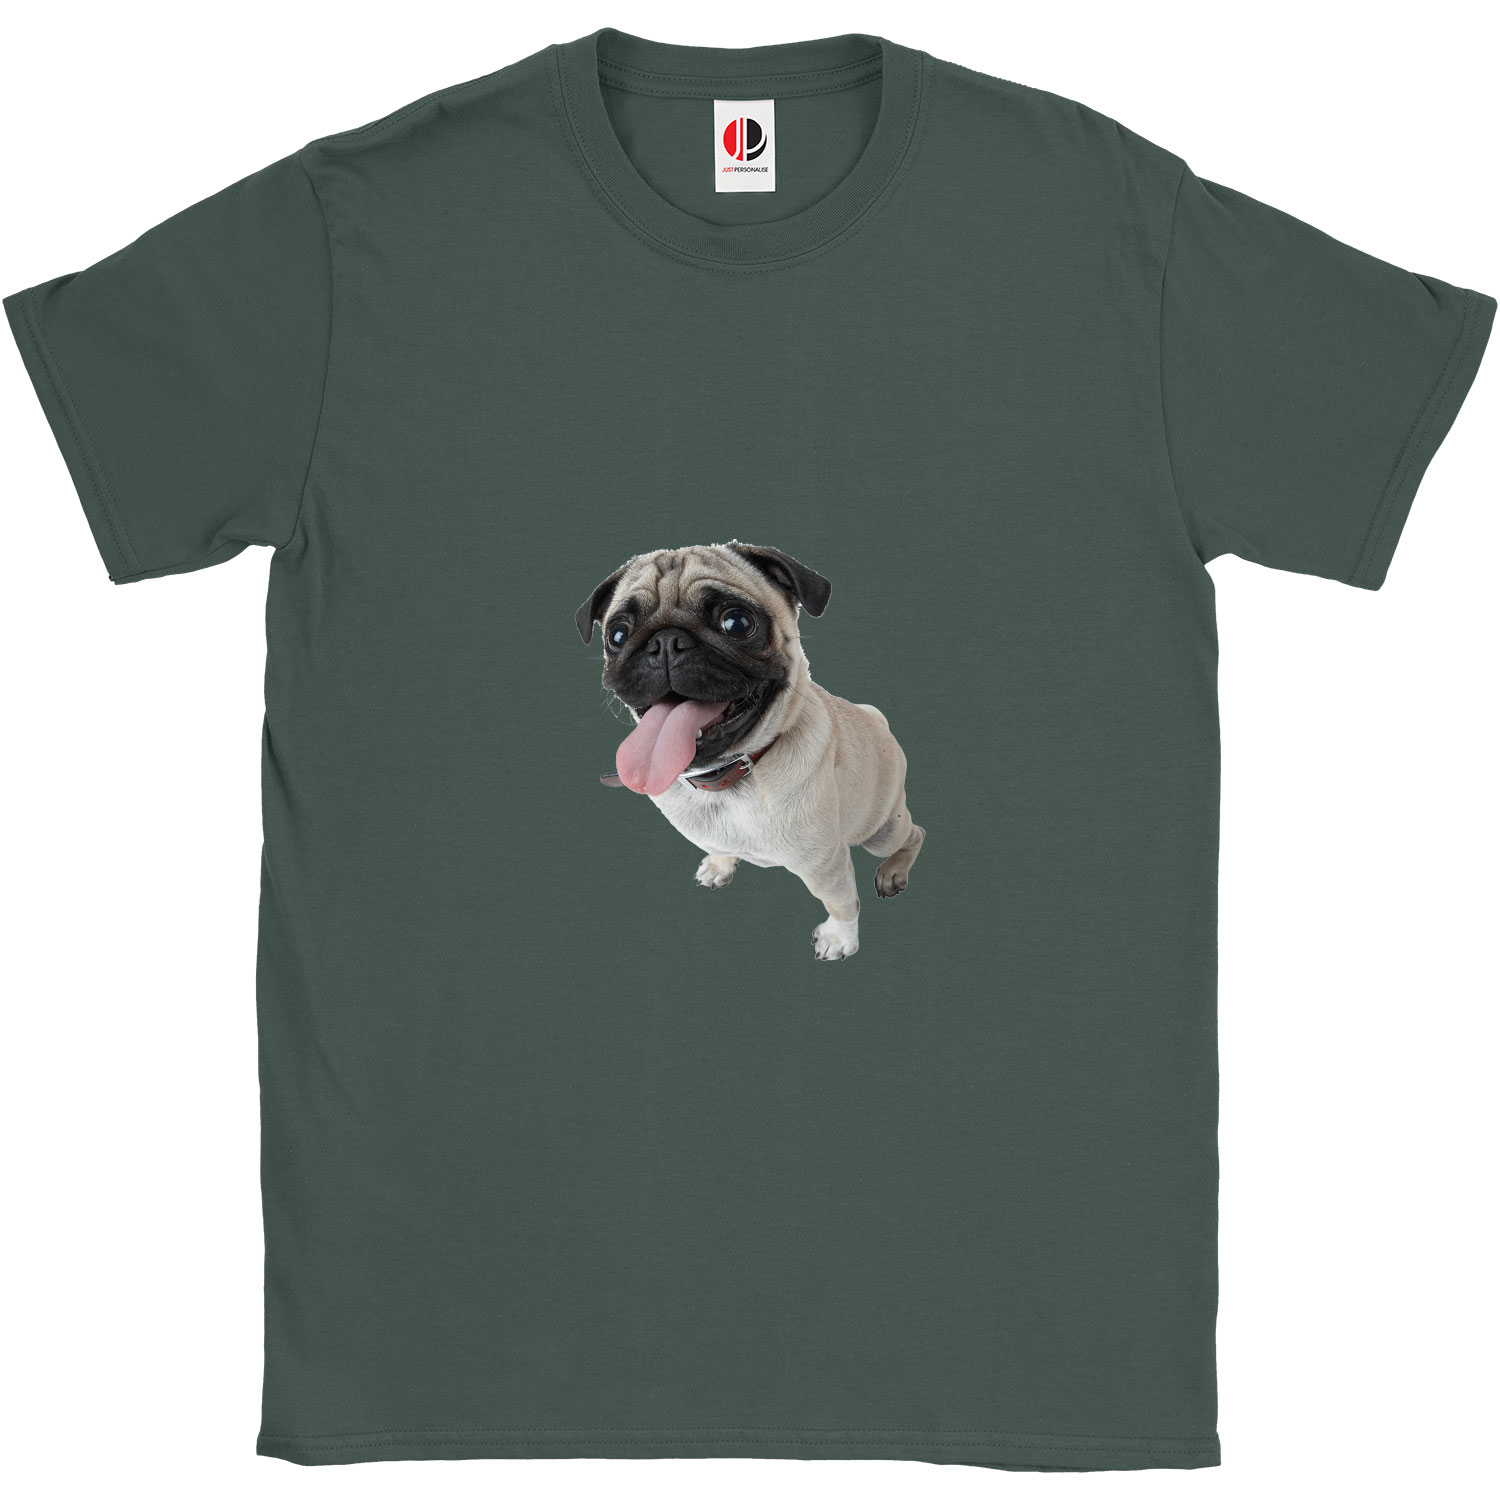 Kid's Green T-Shirt (9-11 Years Old)